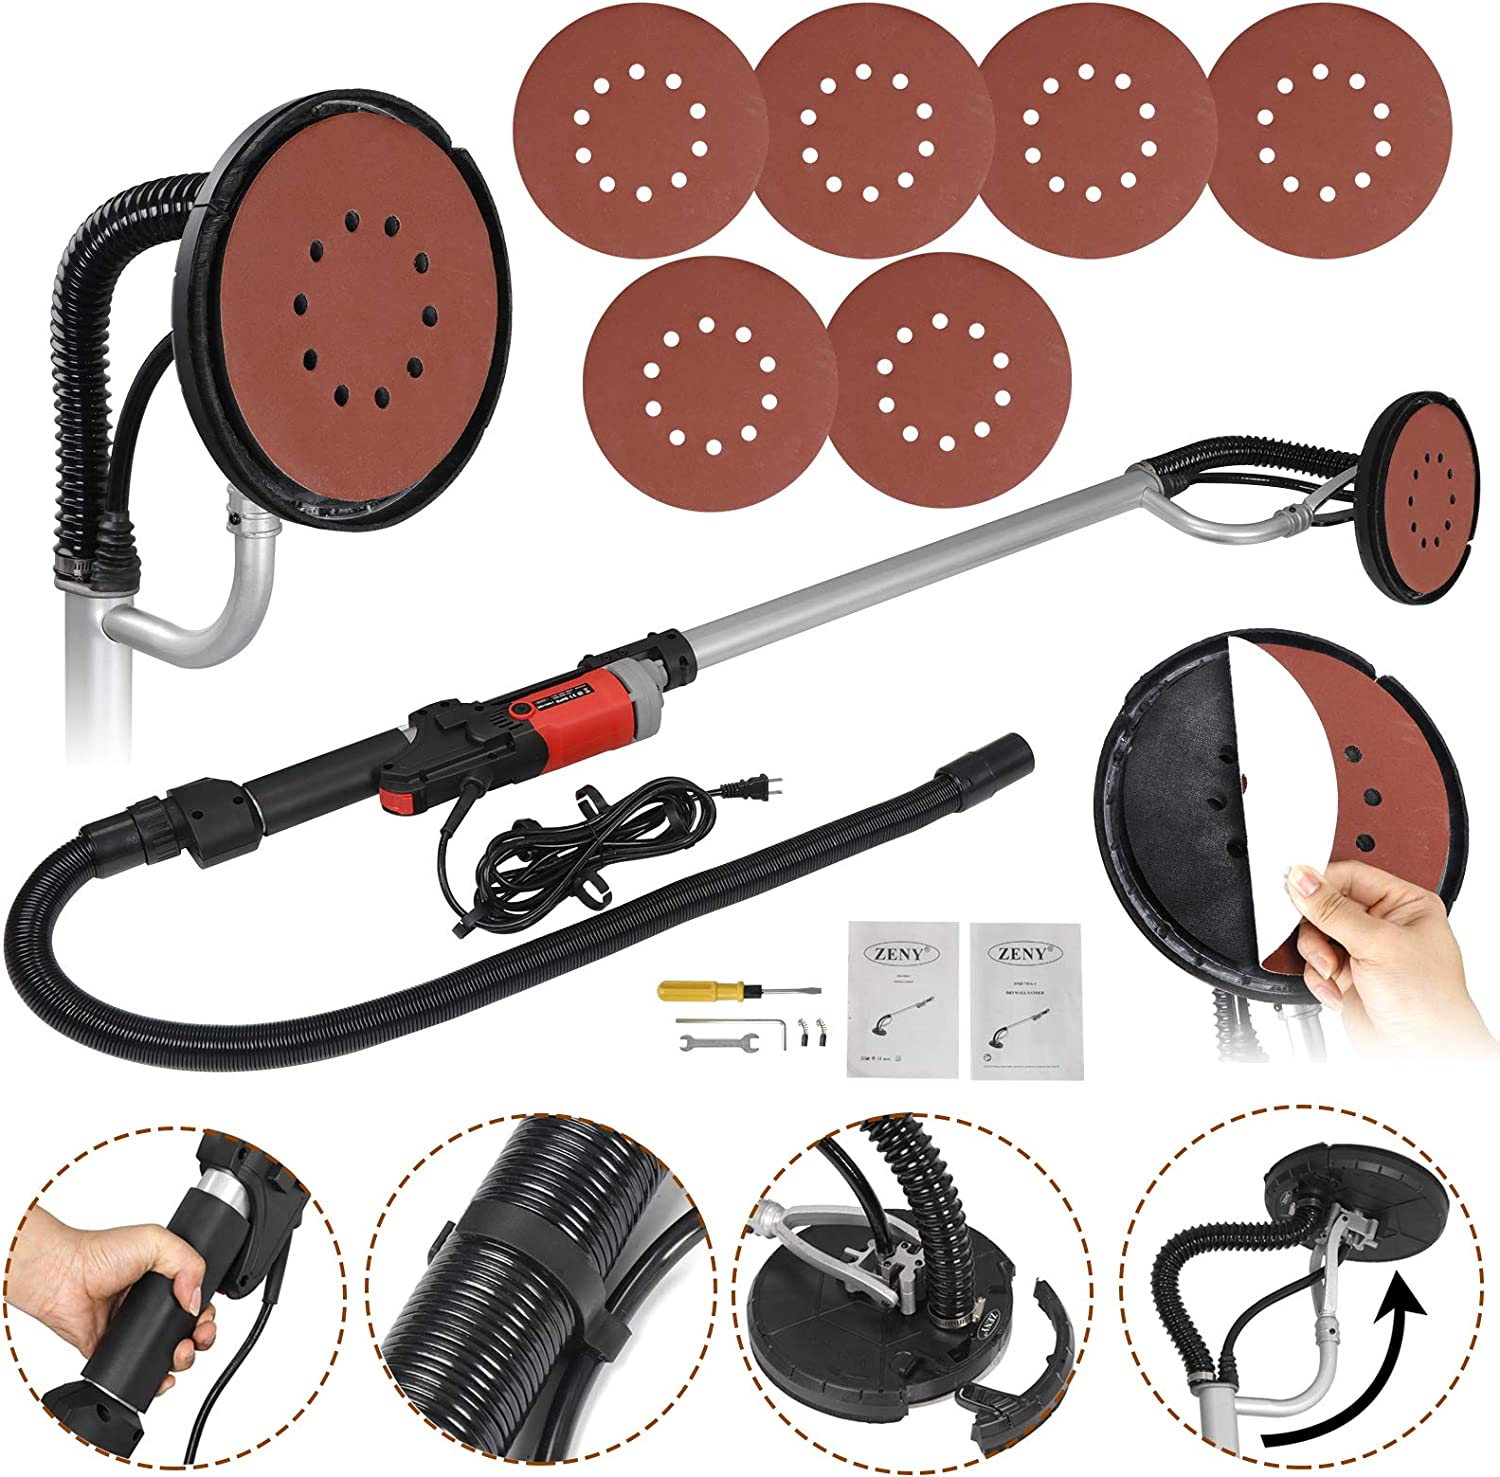 9. ZENY 800W Electric Drywall Sander